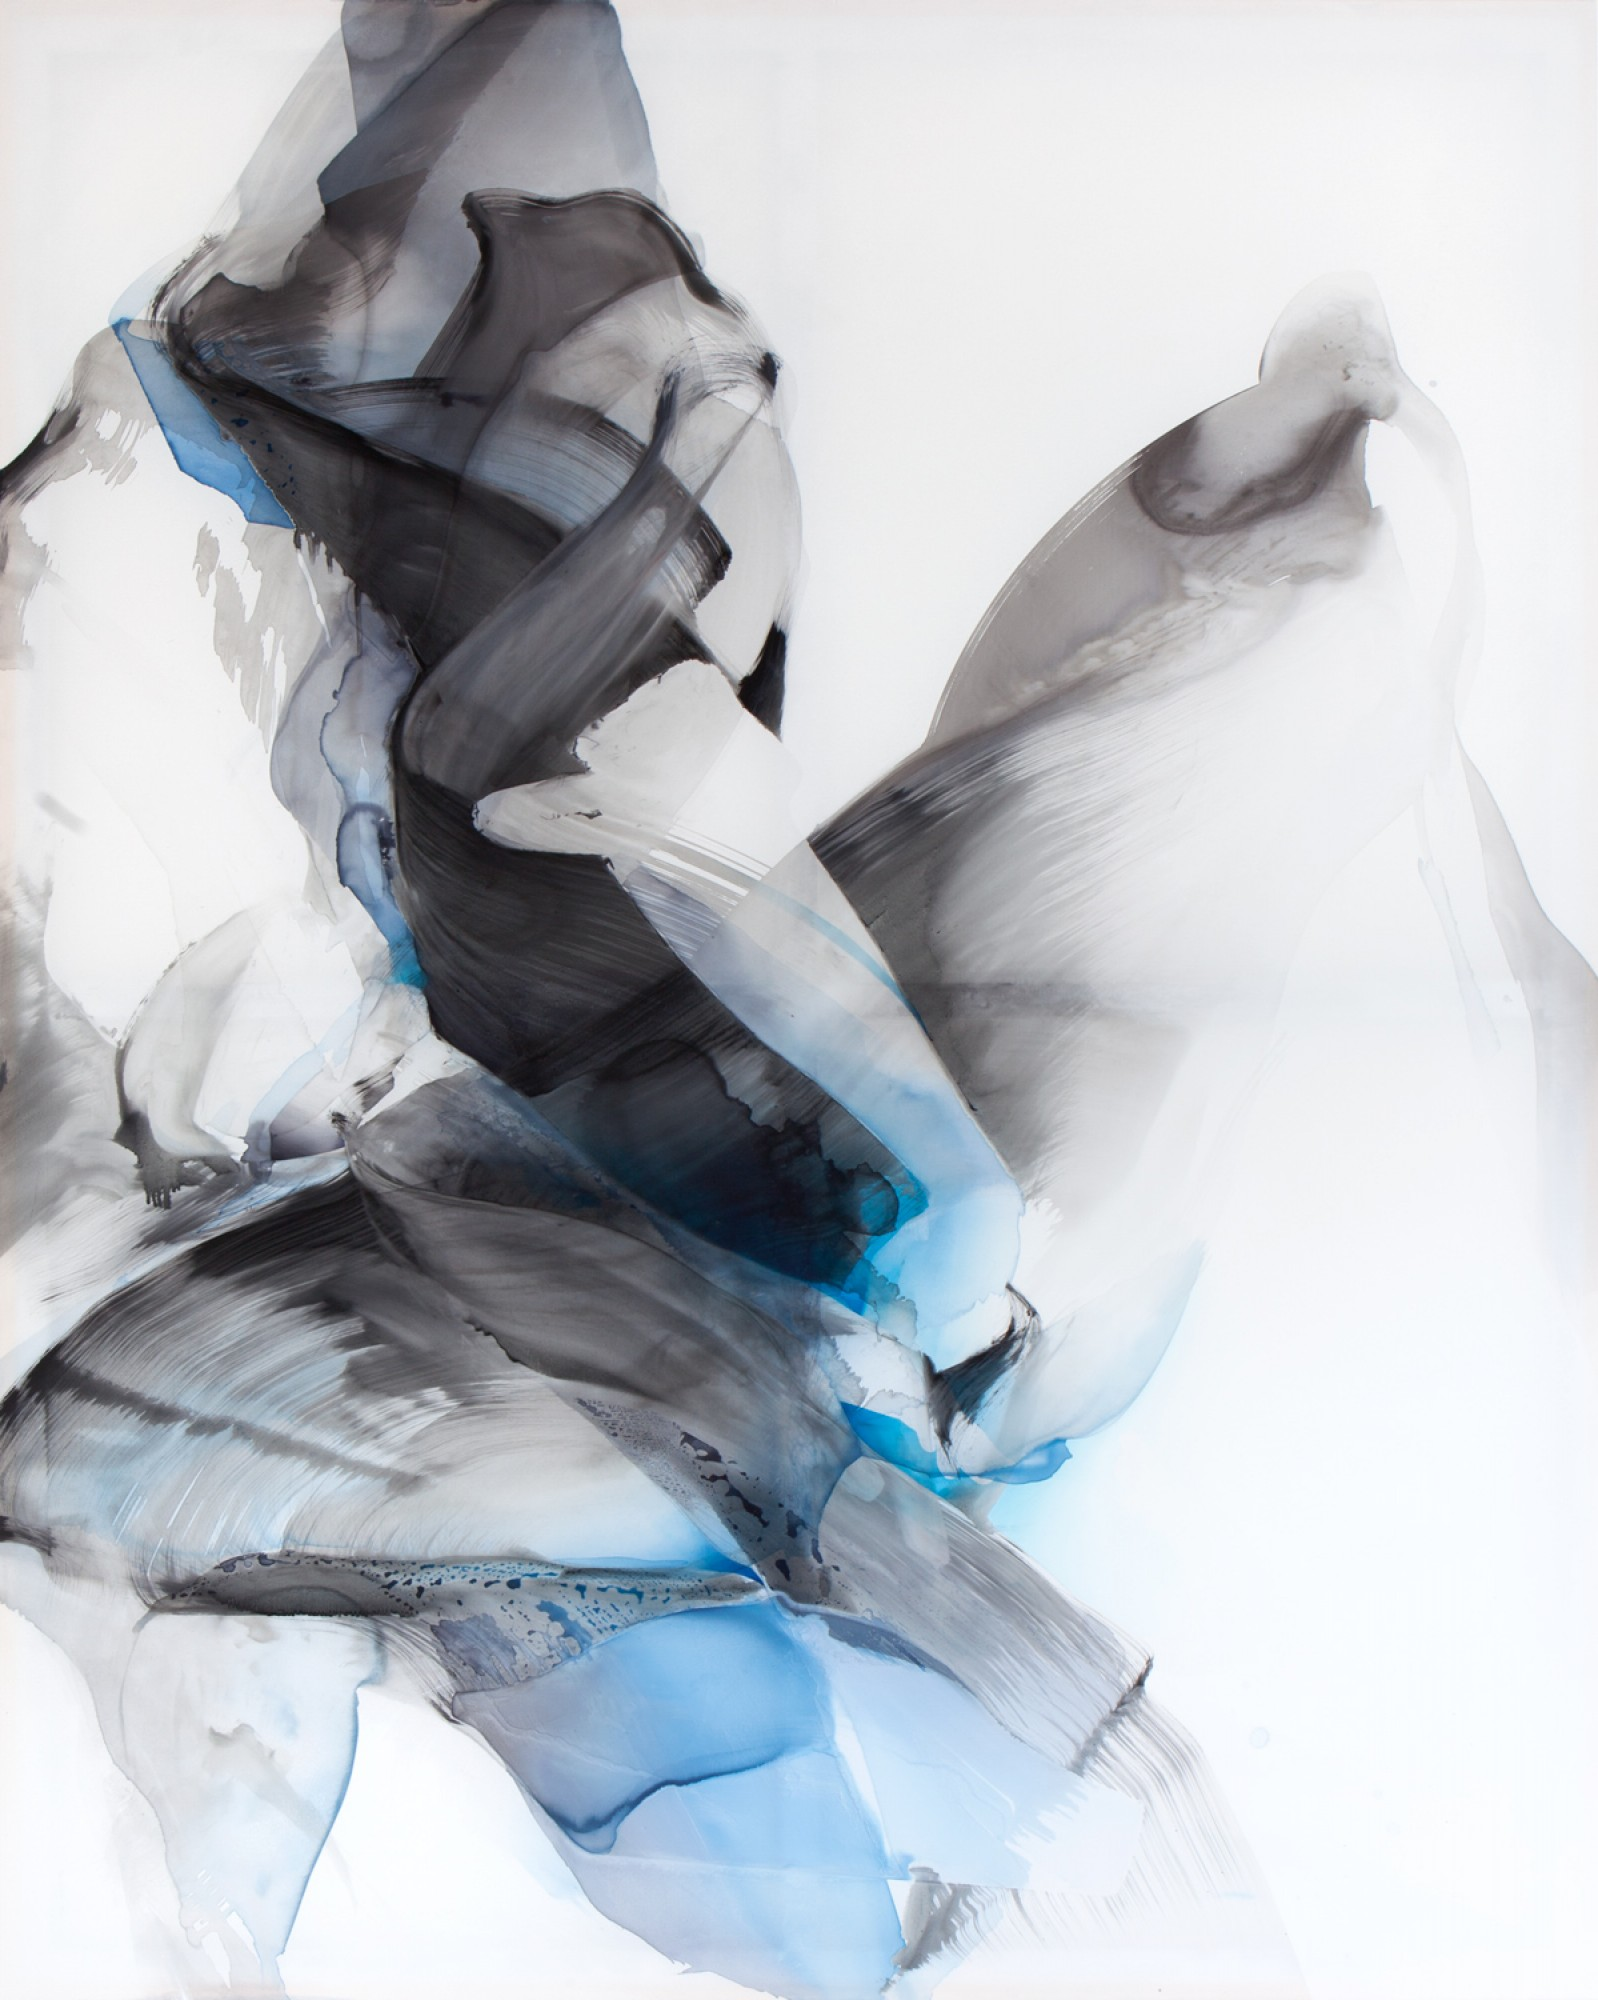 Natascha Schmitten - Kryosphere, 2019, ink, oil on nylon, 250 x 200 cm